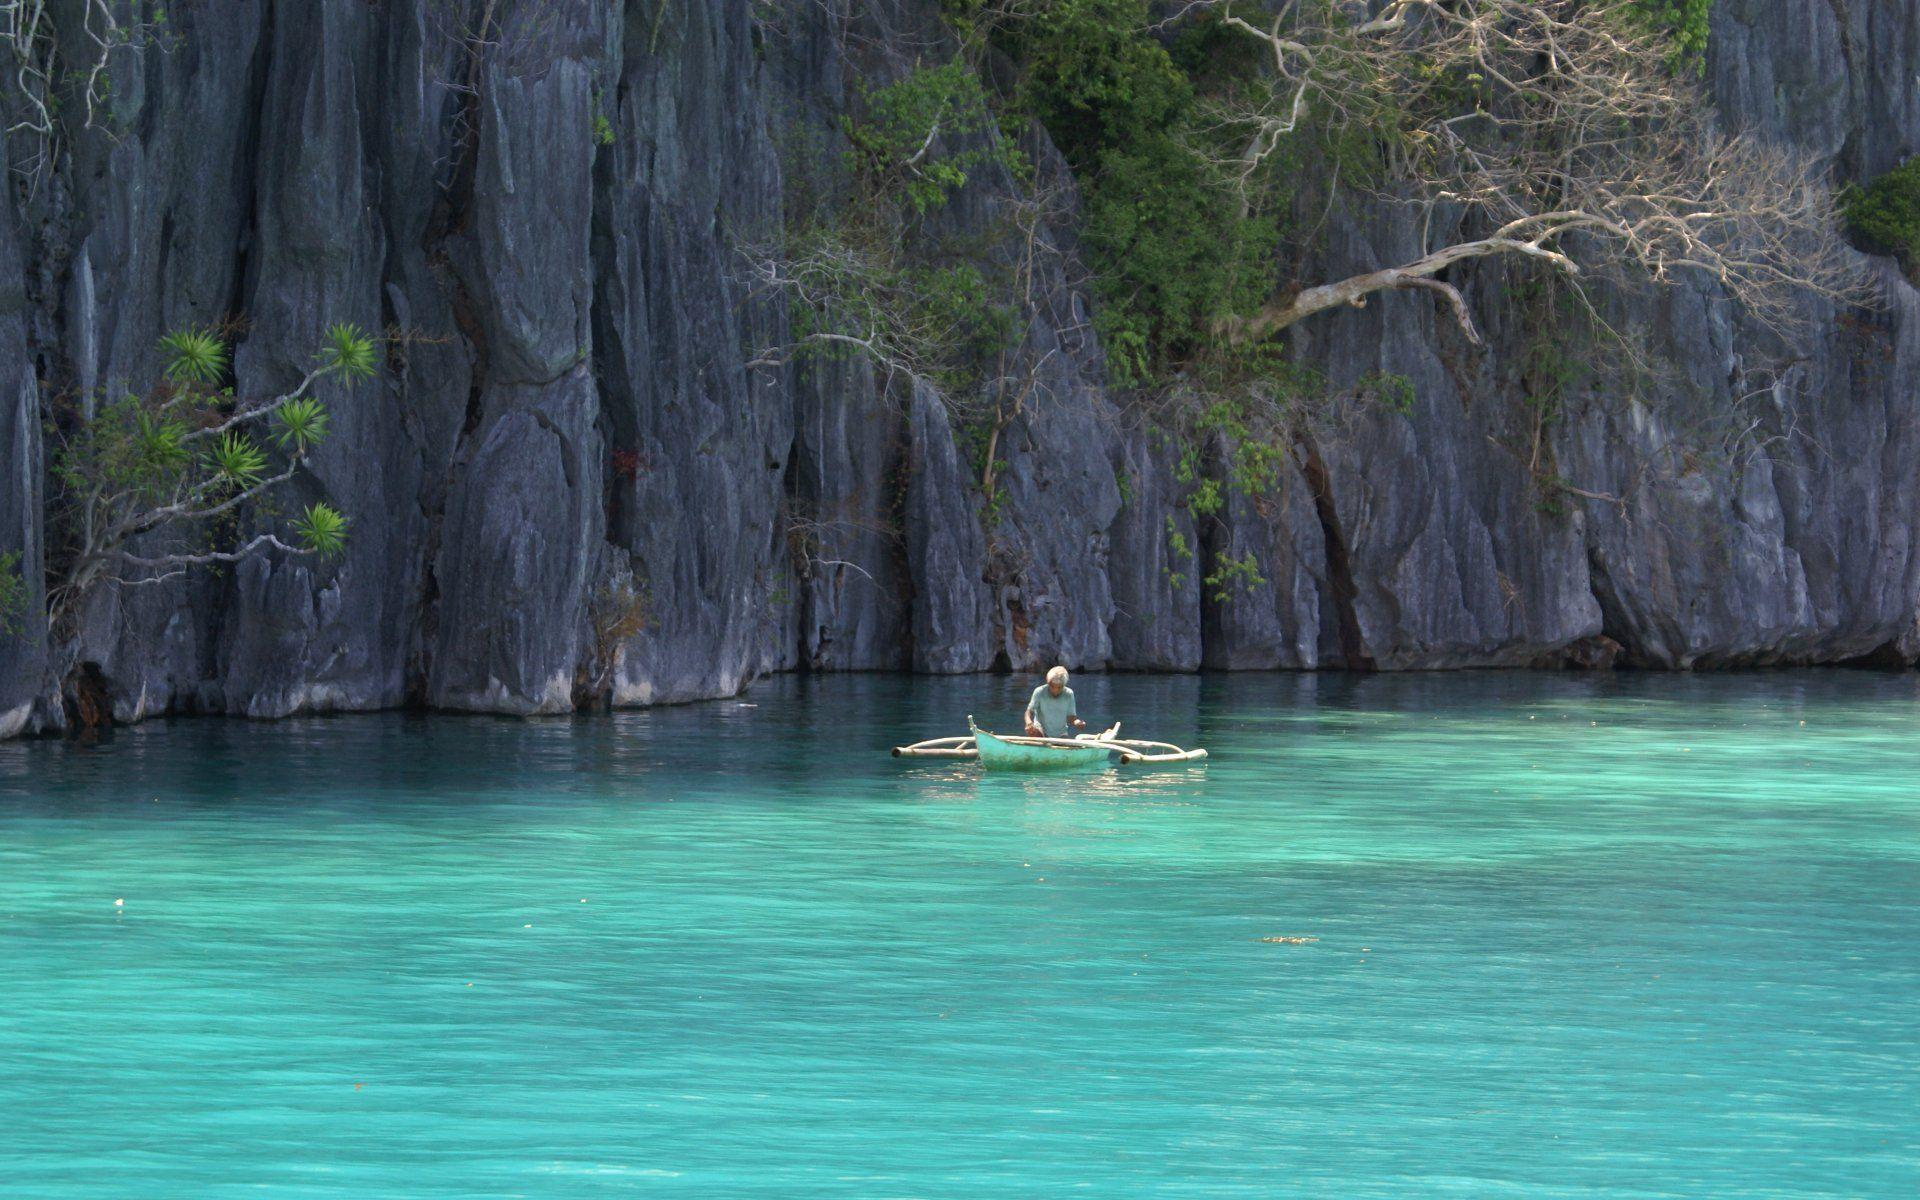 Philippines HD Wallpaper - WallpaperSafari